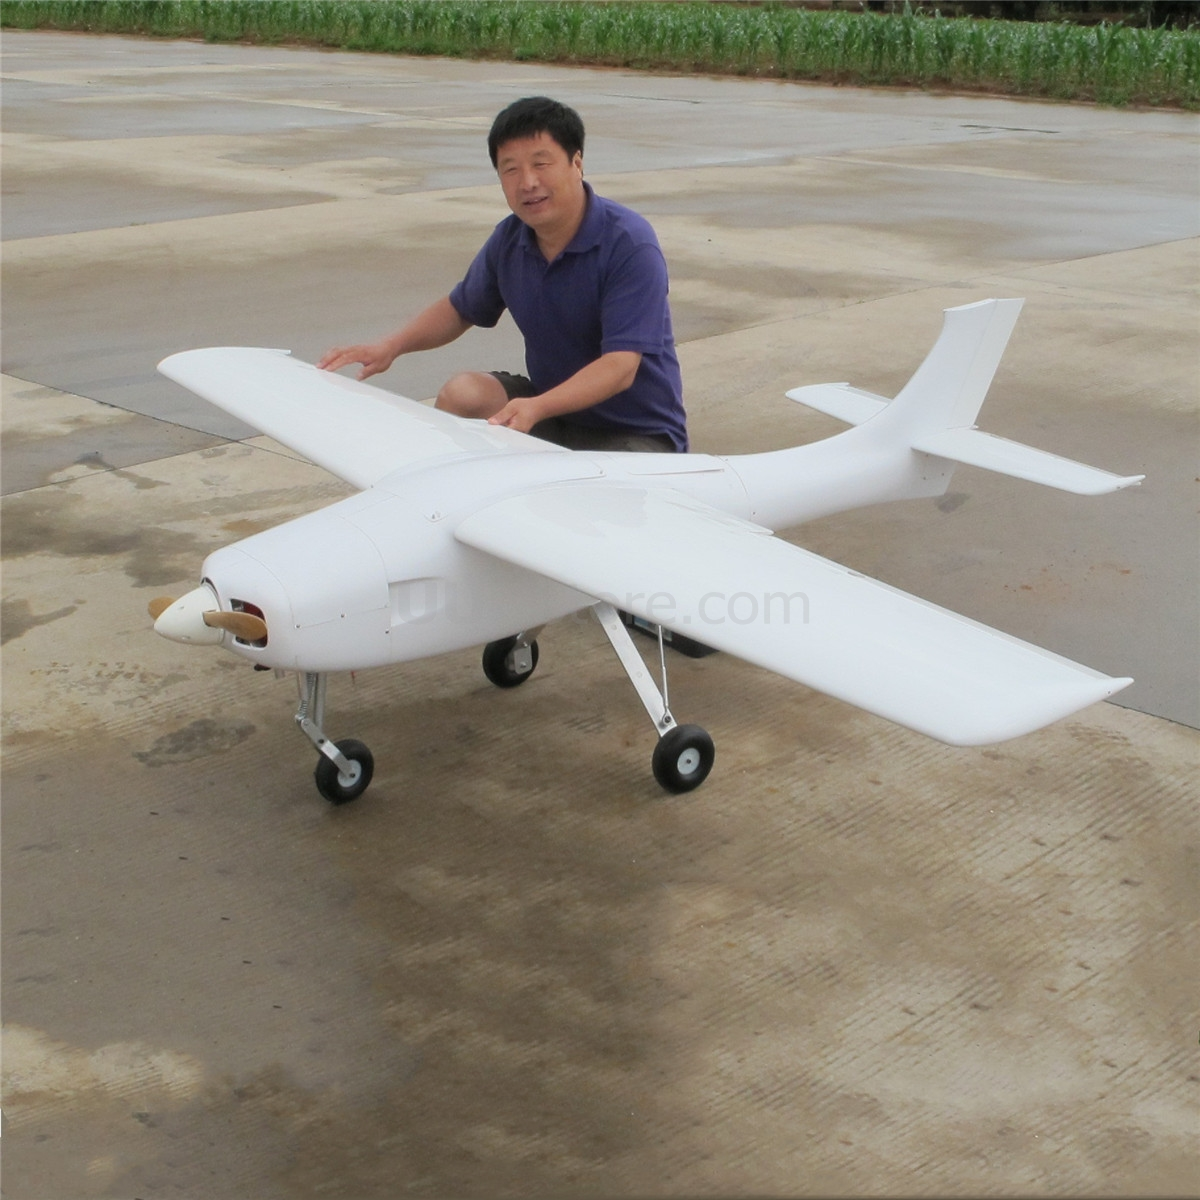 FPVOK UAV Gas Powered 2.6m Wingspan Requirement 50-80cc engine Modle Airplane image